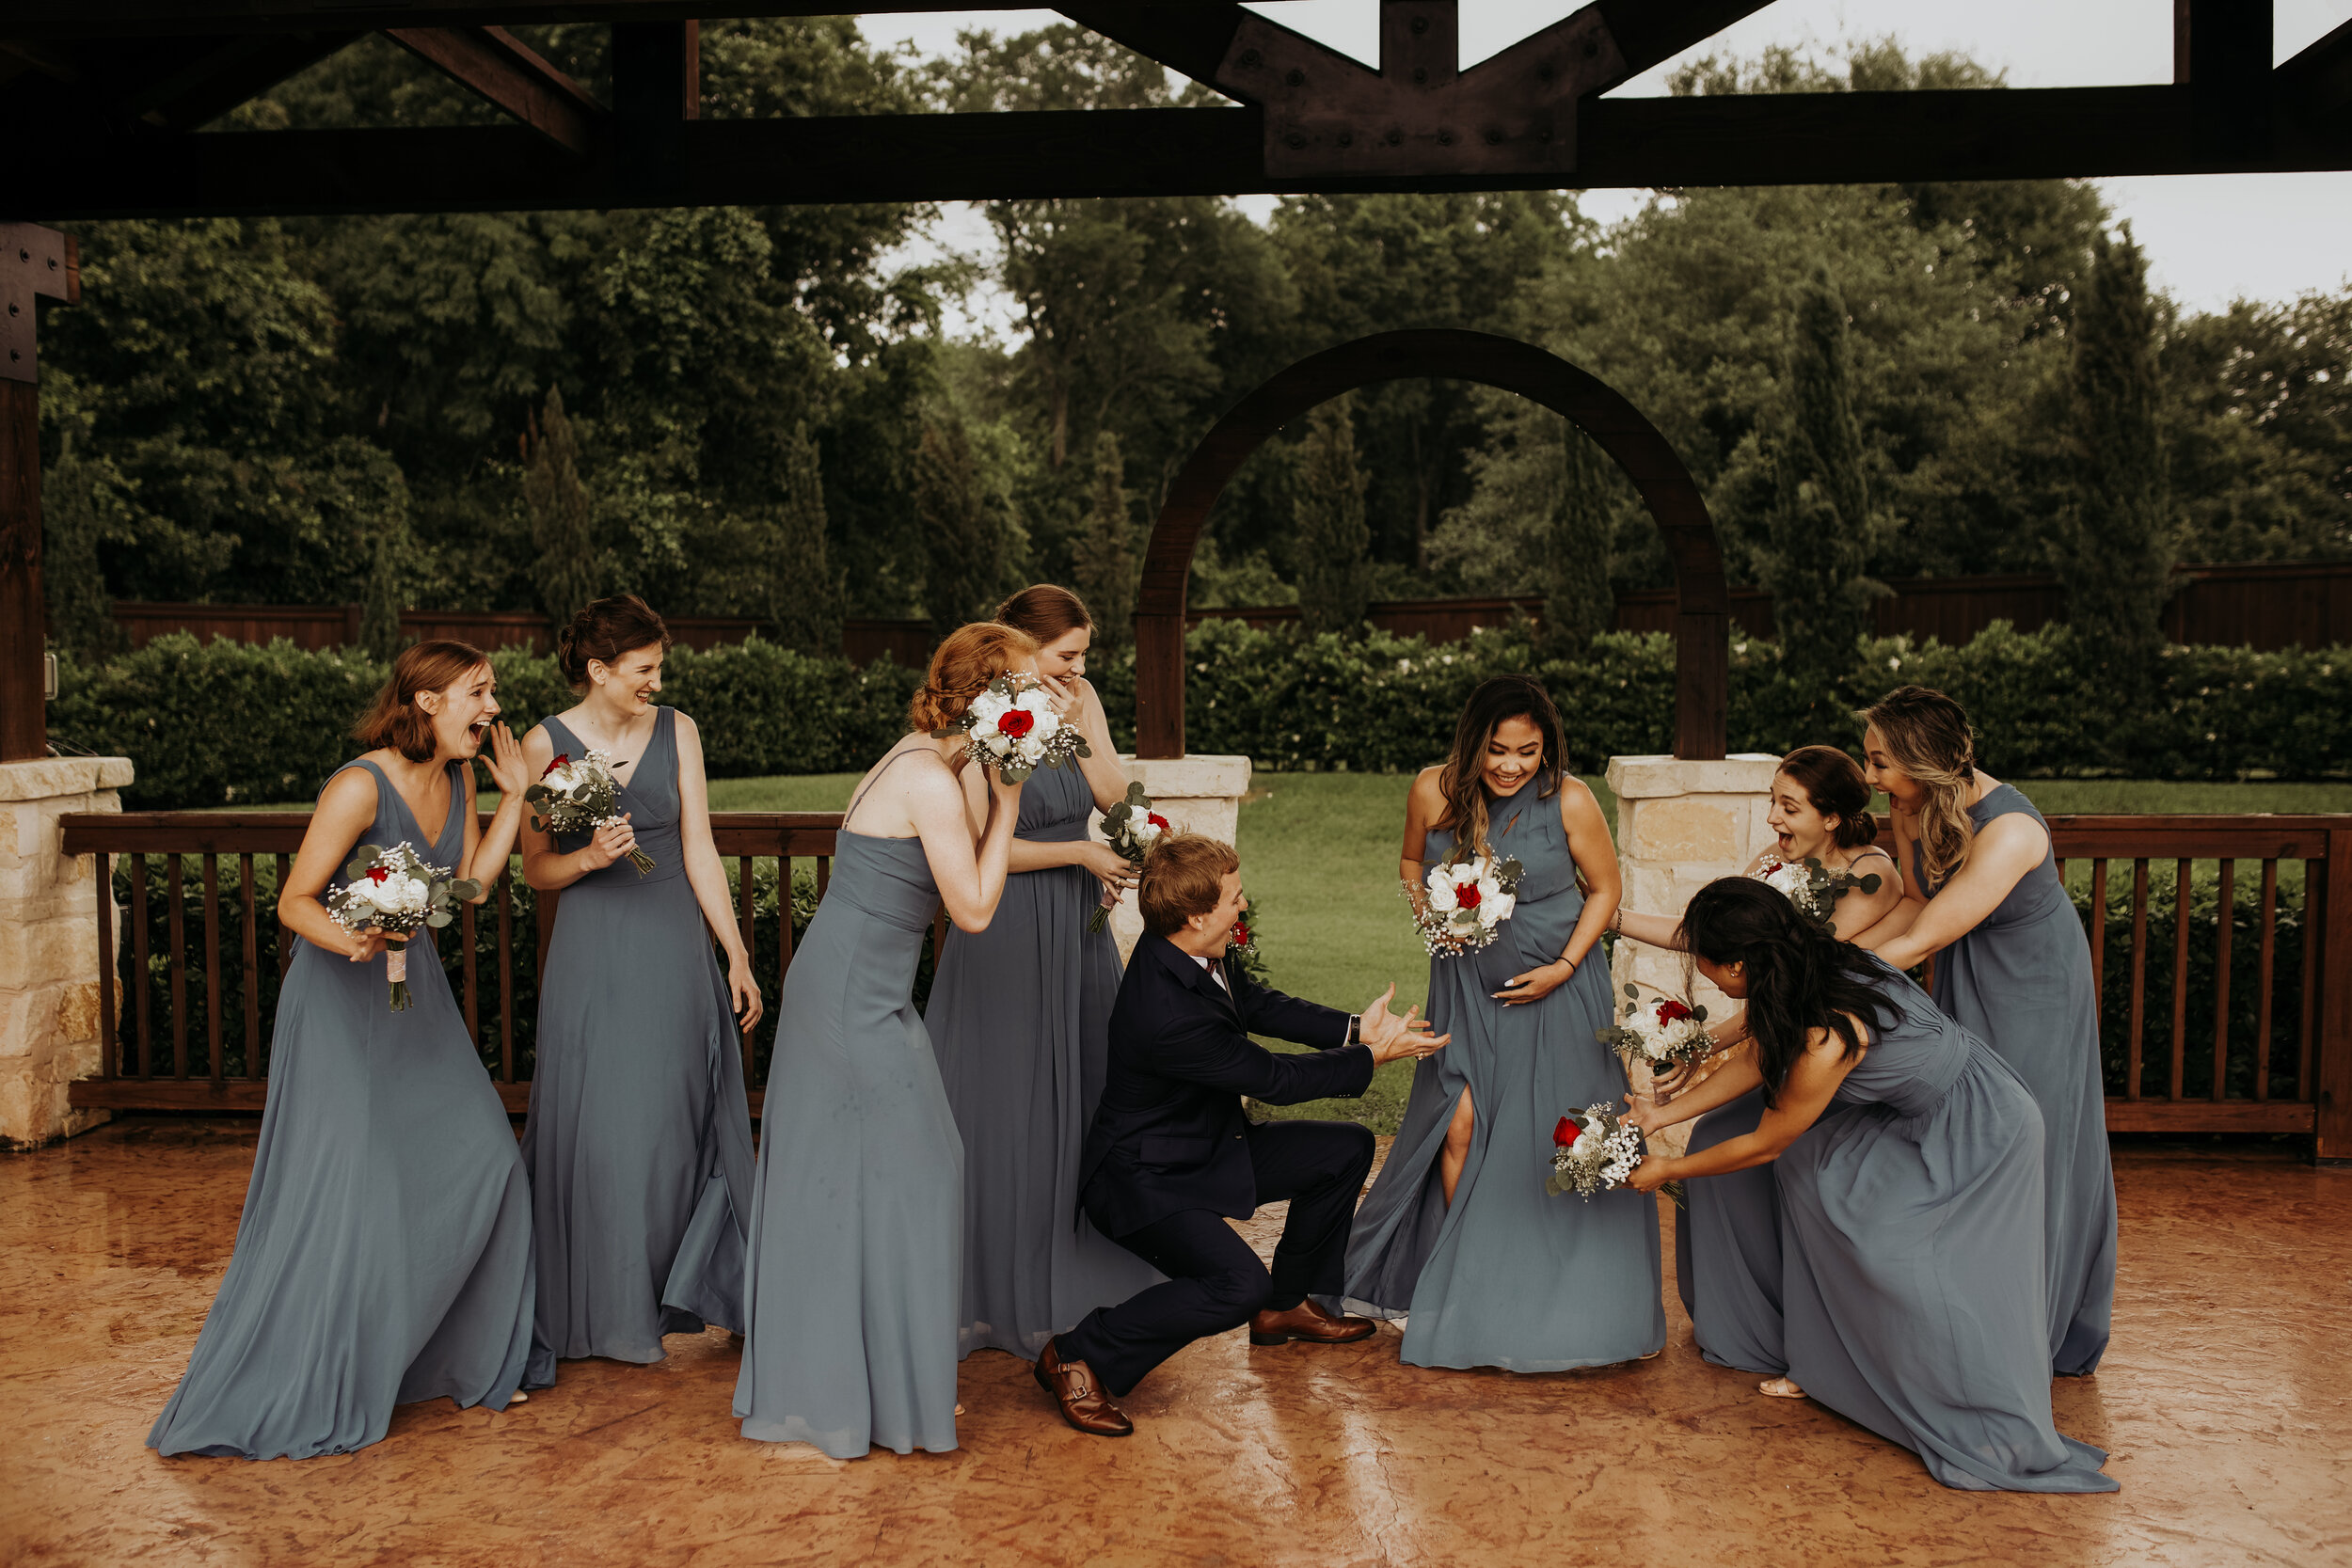 Bridesmaids with Groomsmen || Fun Bridesmaid Pictures || Houston Planner || Epoch Co+